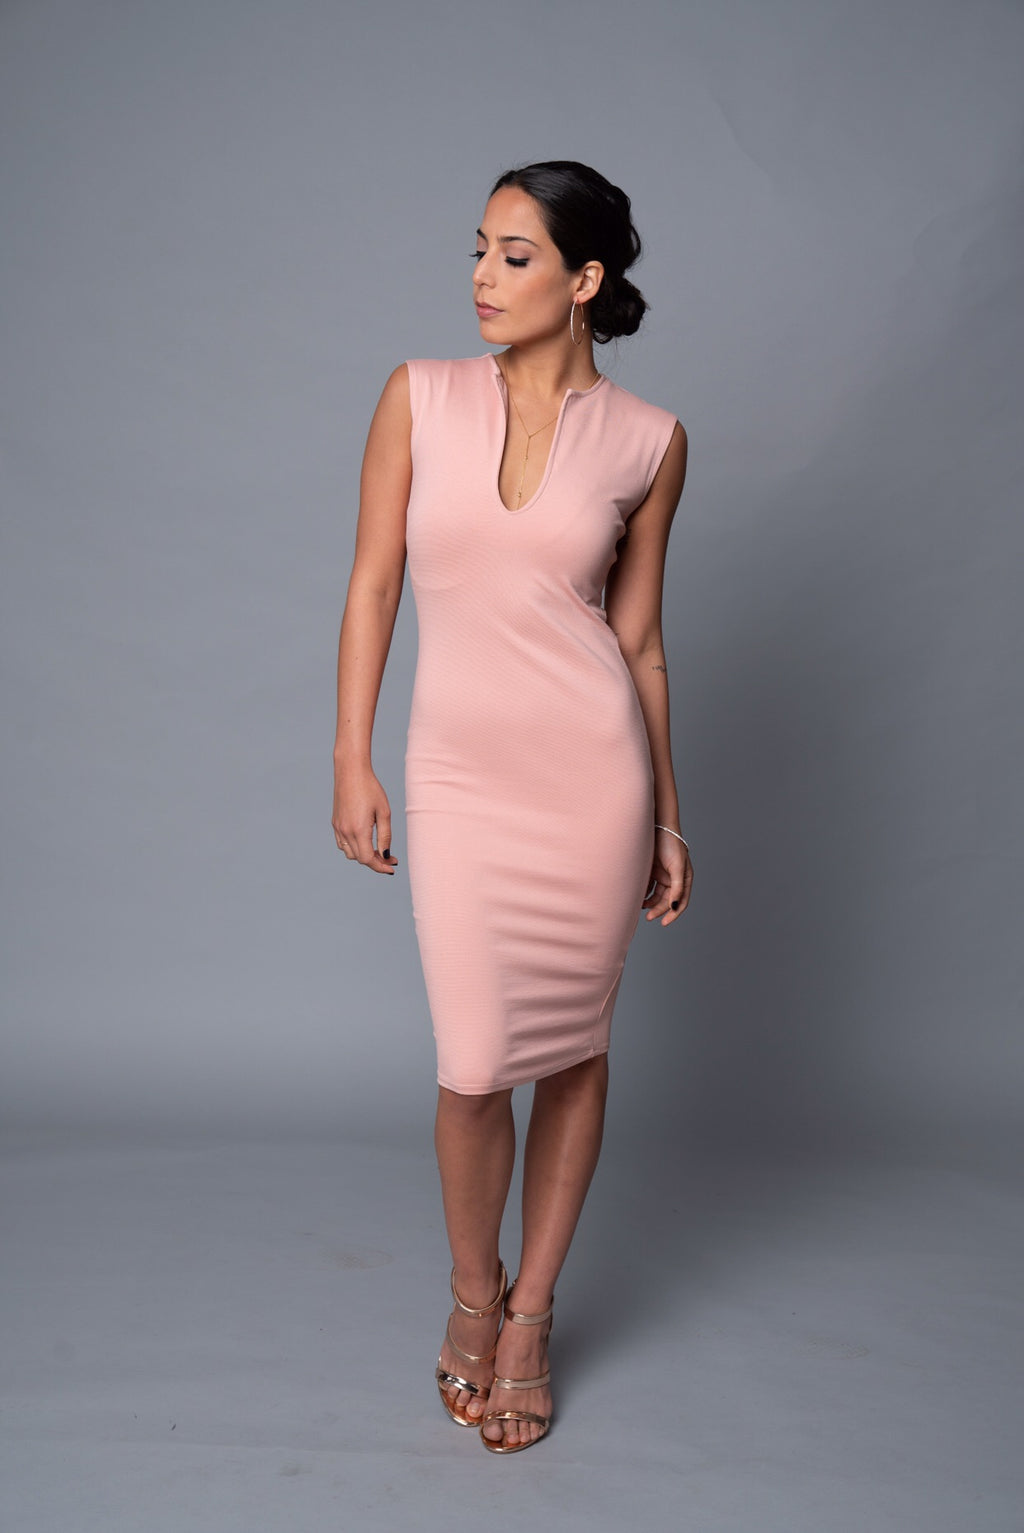 Tara - Blush Pink Signature V-Neck Dress - TN-9